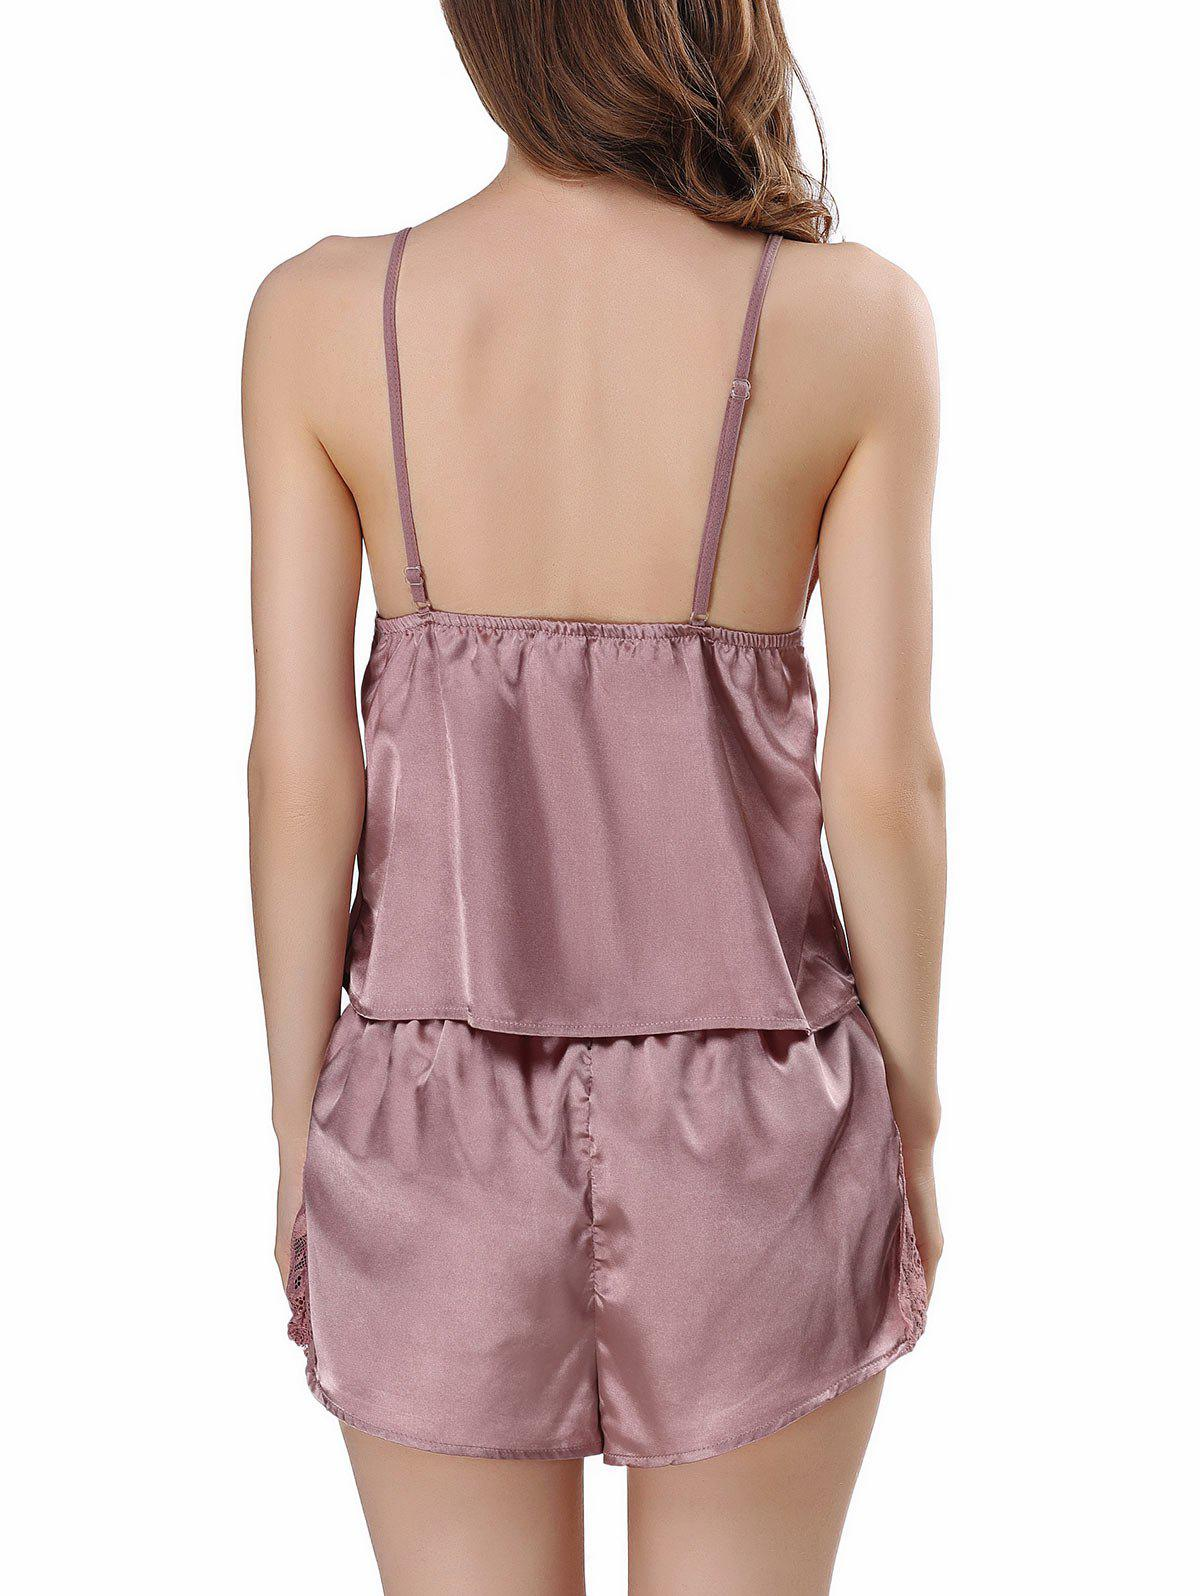 Ensemble de pyjama en satin Cami - Pale Rose Gris L